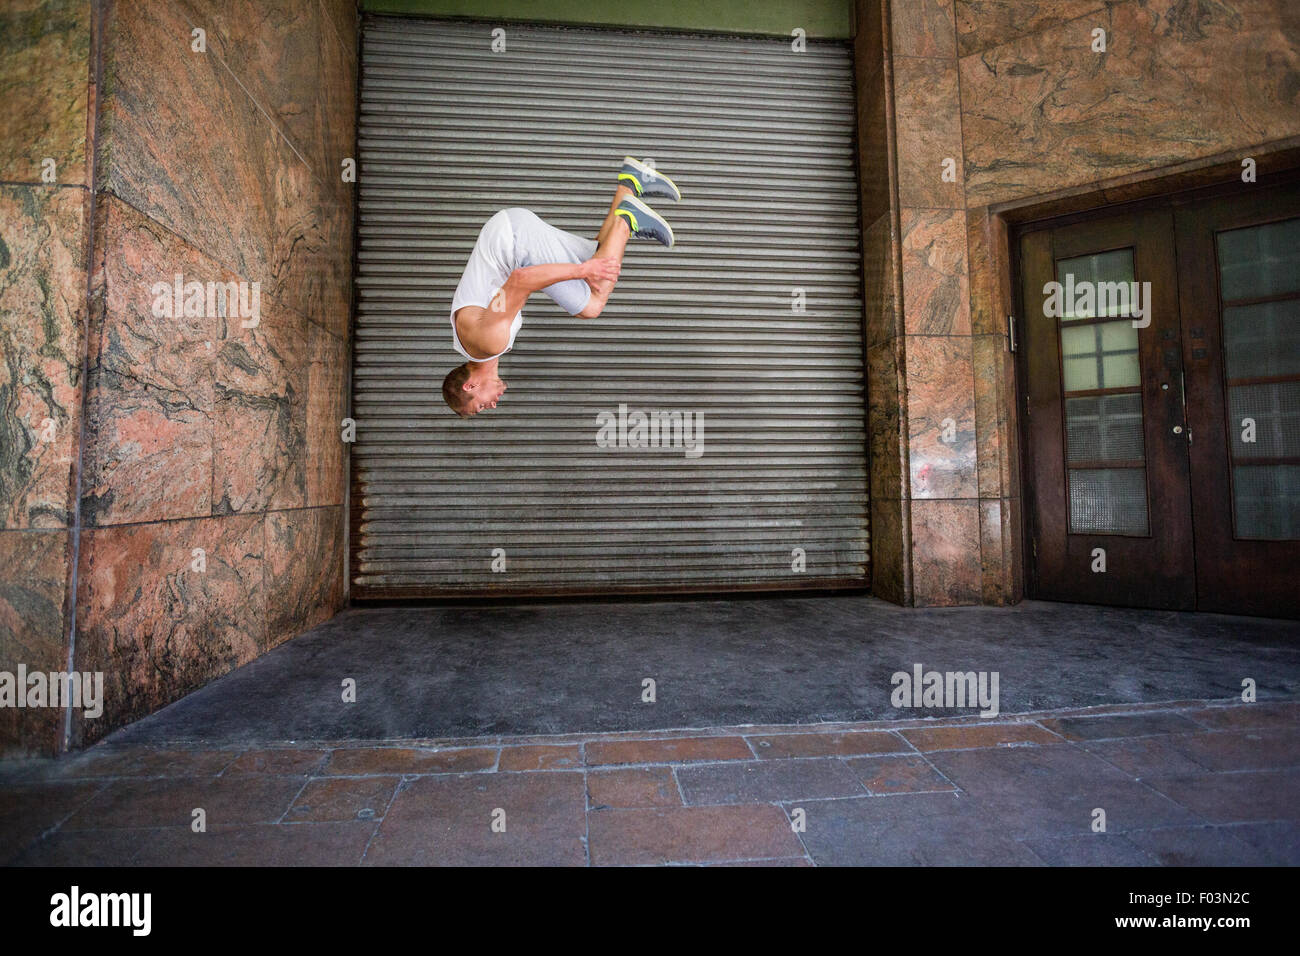 Extreme athlete doing a front flip in front of a building - Stock Image